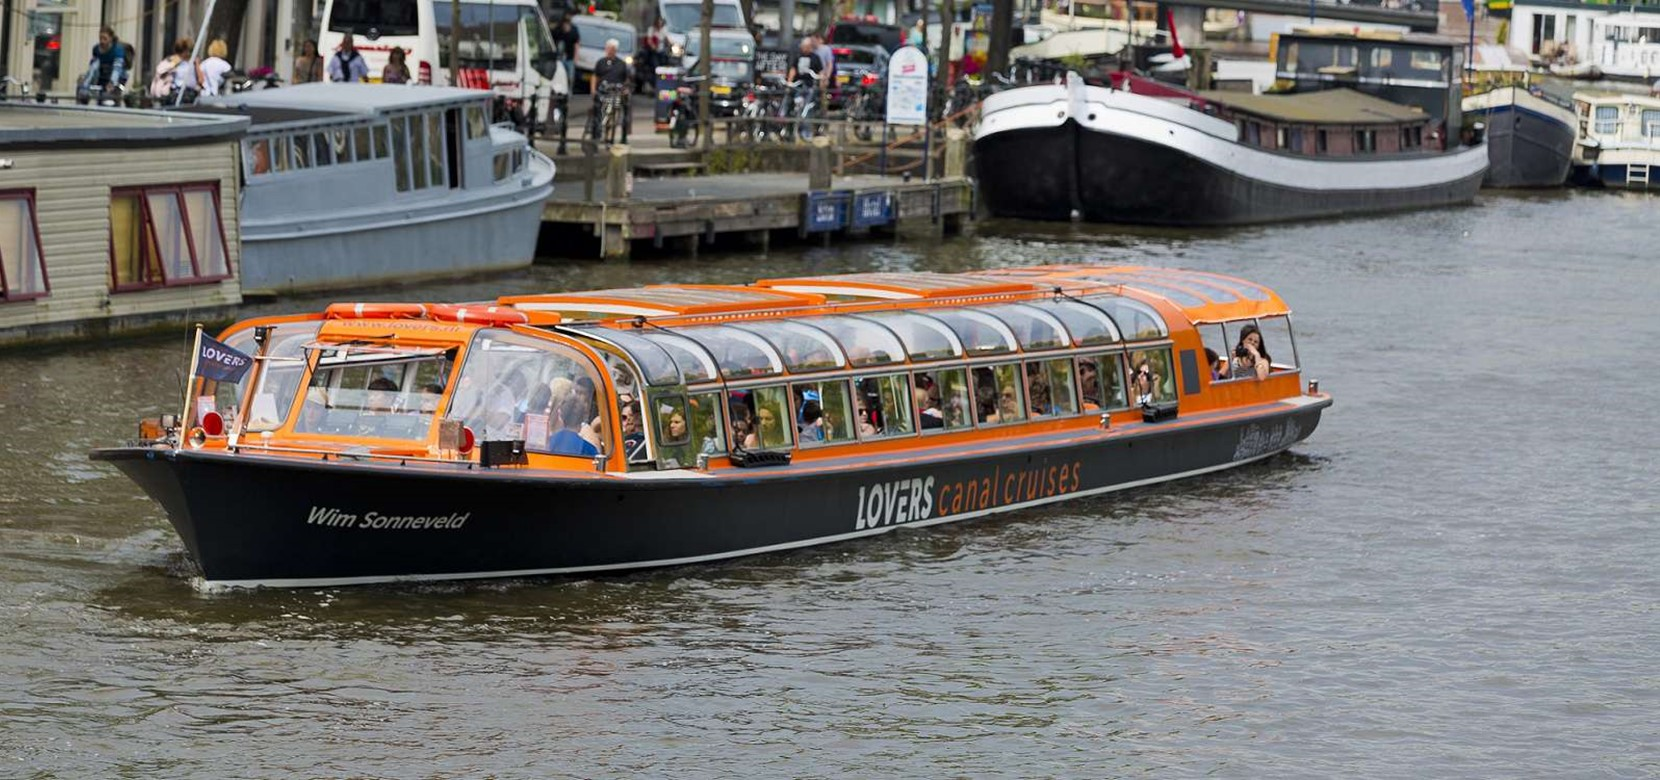 Free Amsterdam Canal Cruise + Rotterdam, Delft & The Hague